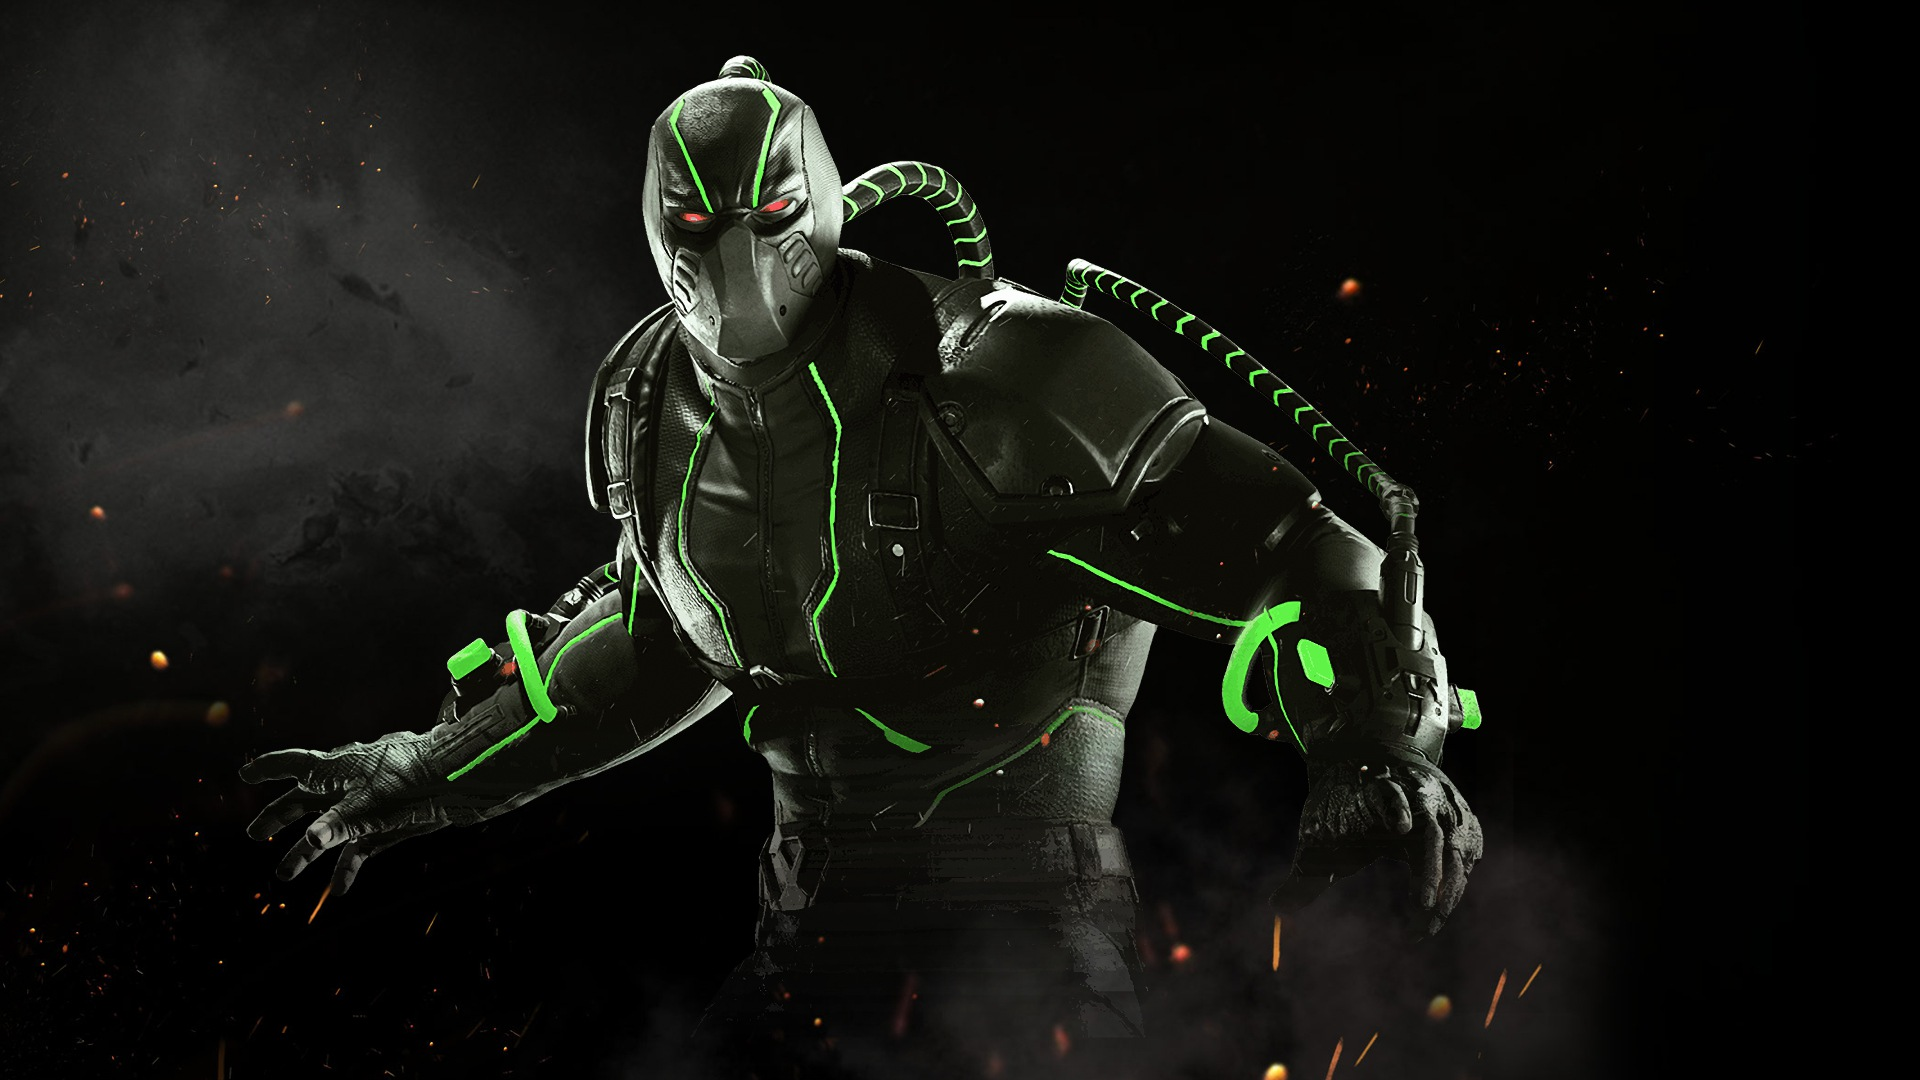 Bane full hd wallpaper and background image 1920x1080 id827330 video game injustice 2 bane dc comics wallpaper voltagebd Choice Image